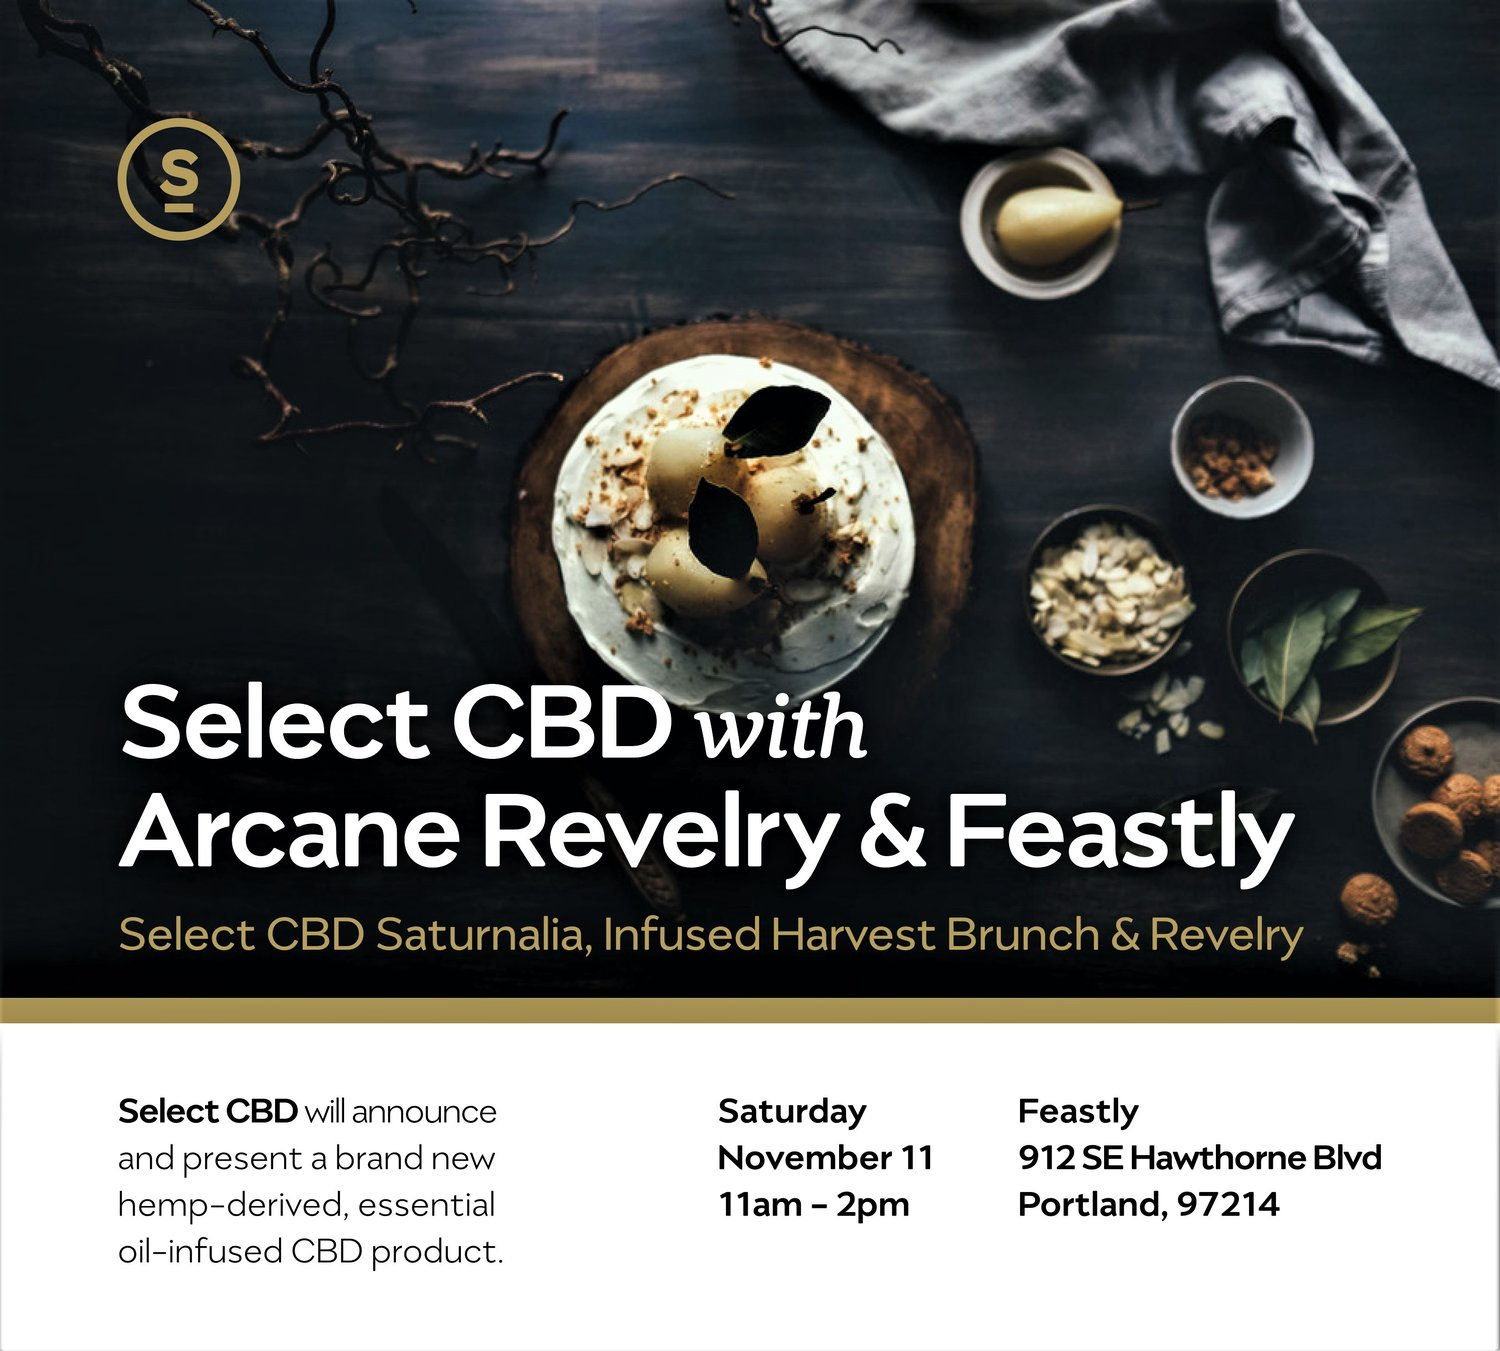 Arcane Revelry Partners with Feastly PDX and Select CBD for